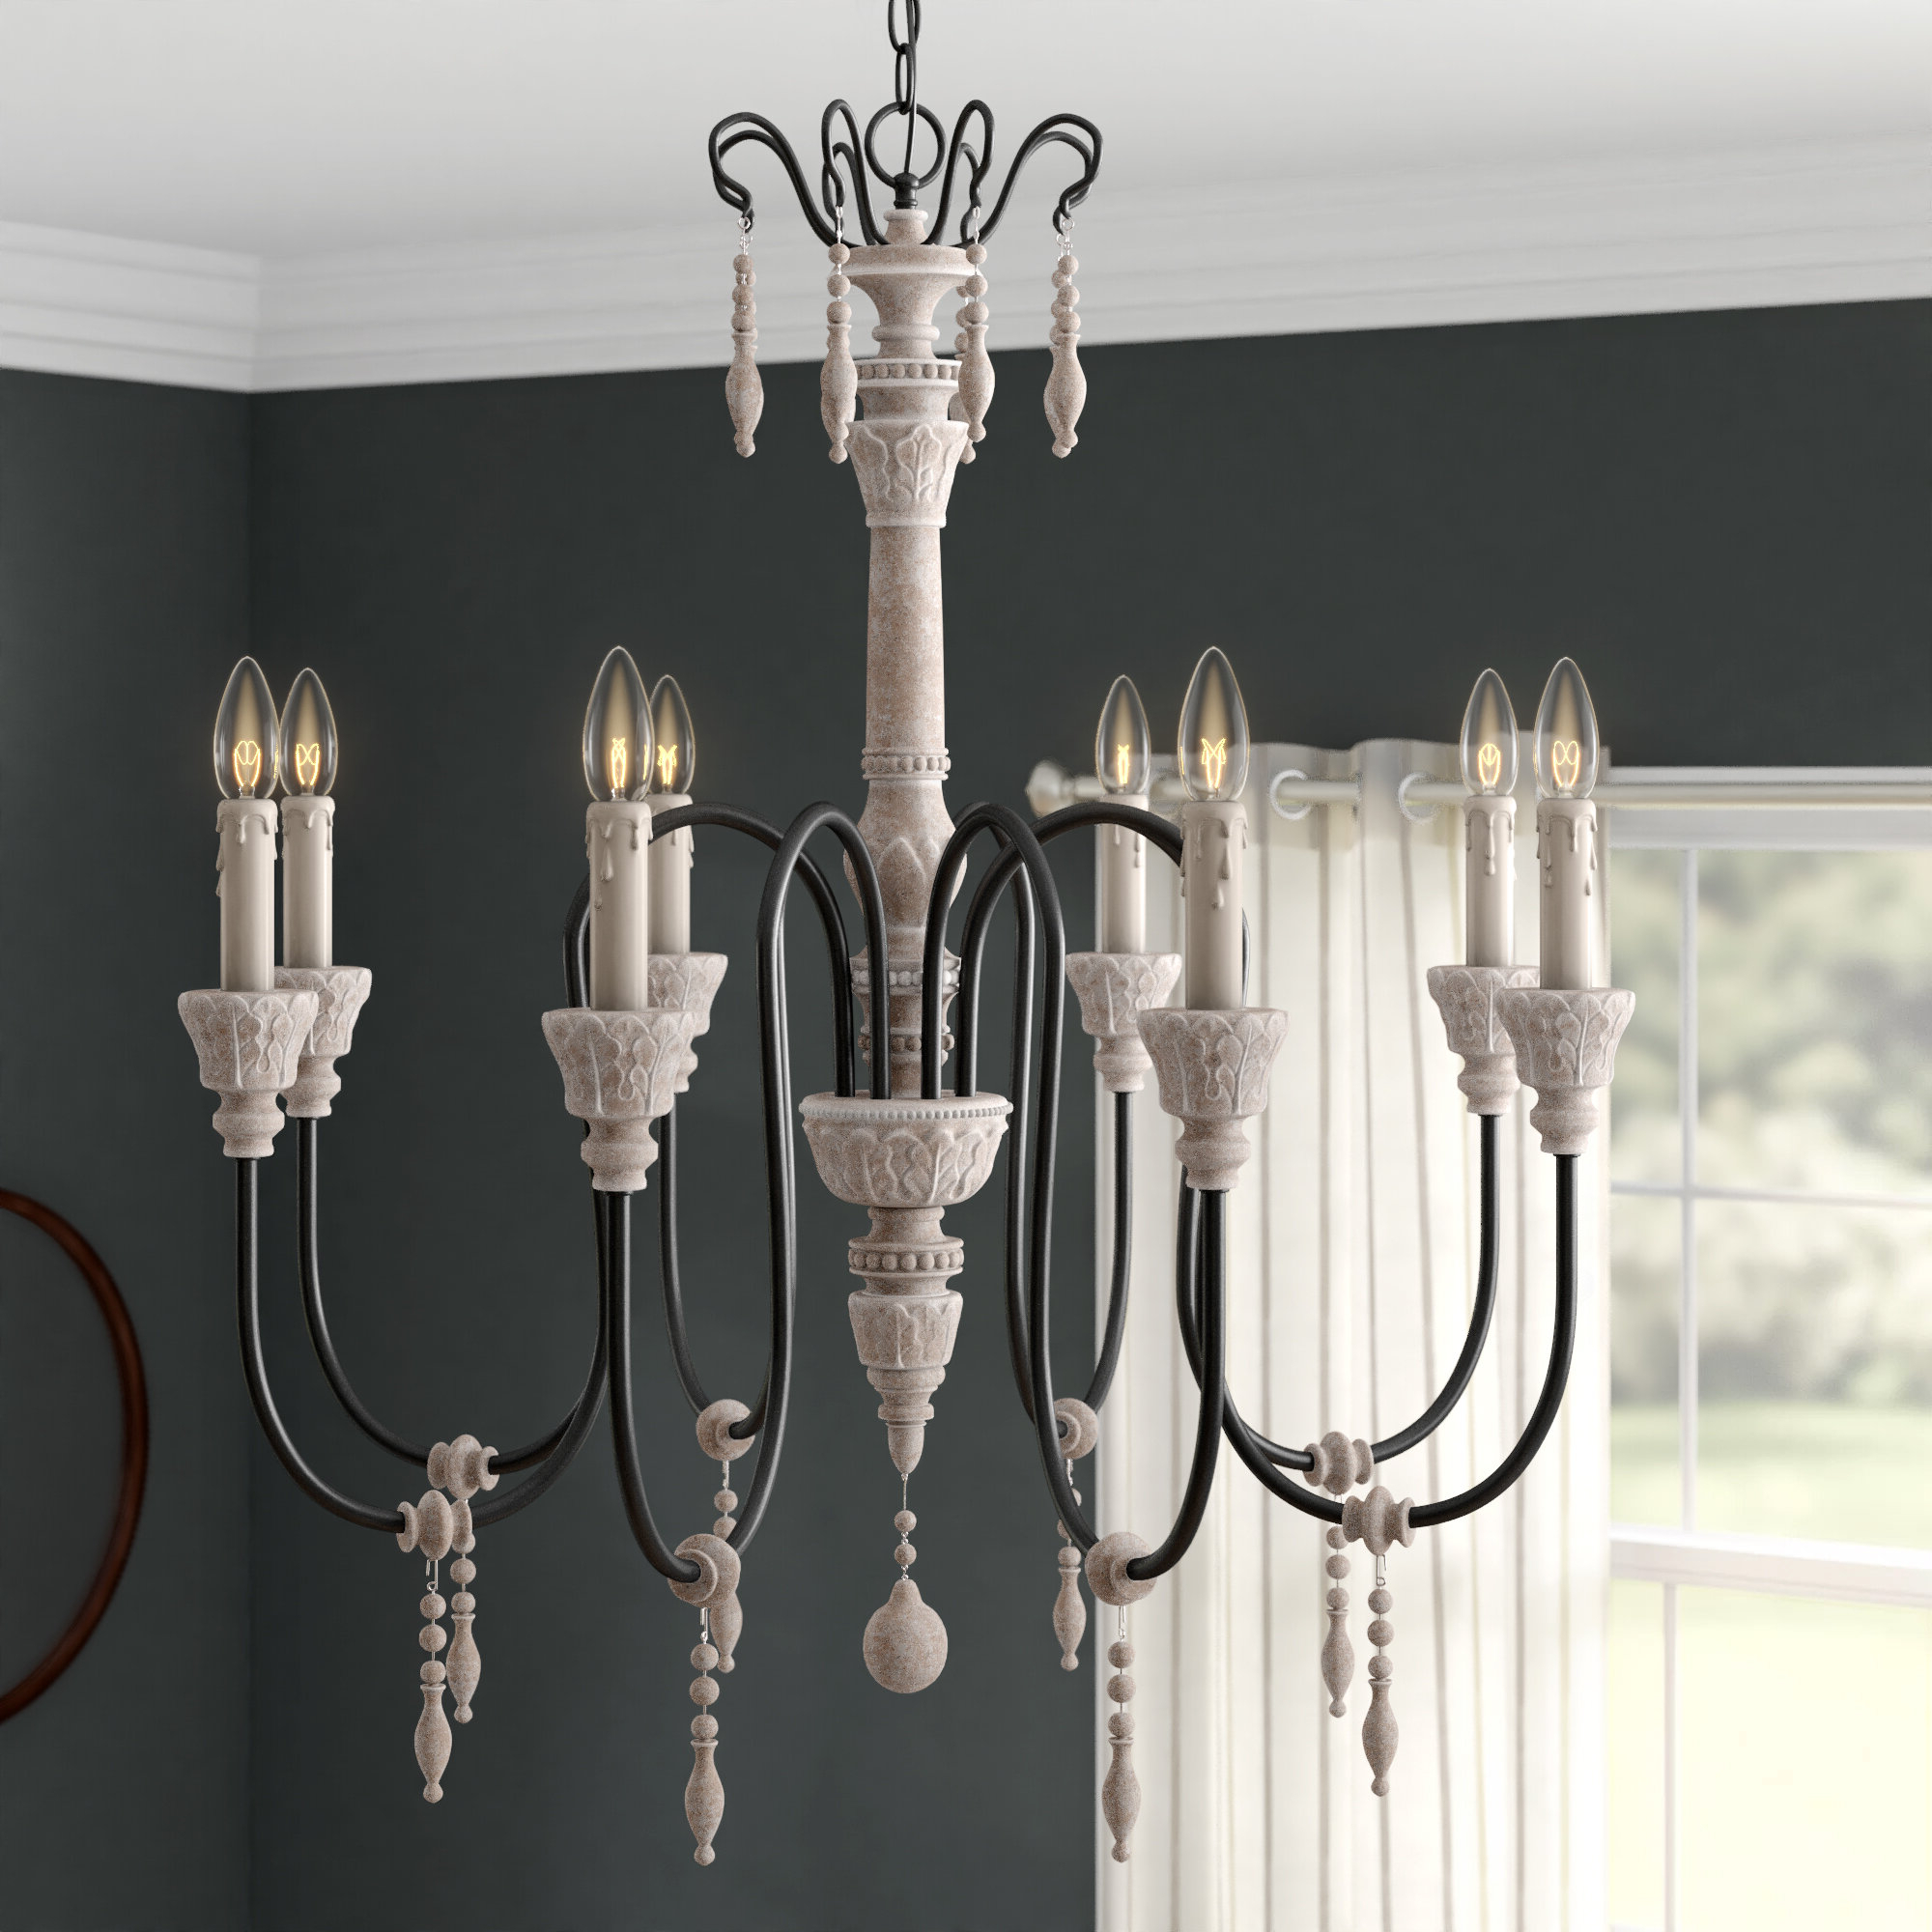 Newest Oriana 4 Light Single Geometric Chandeliers With Ailsa 8 Light Candle Style Chandelier (Gallery 17 of 20)